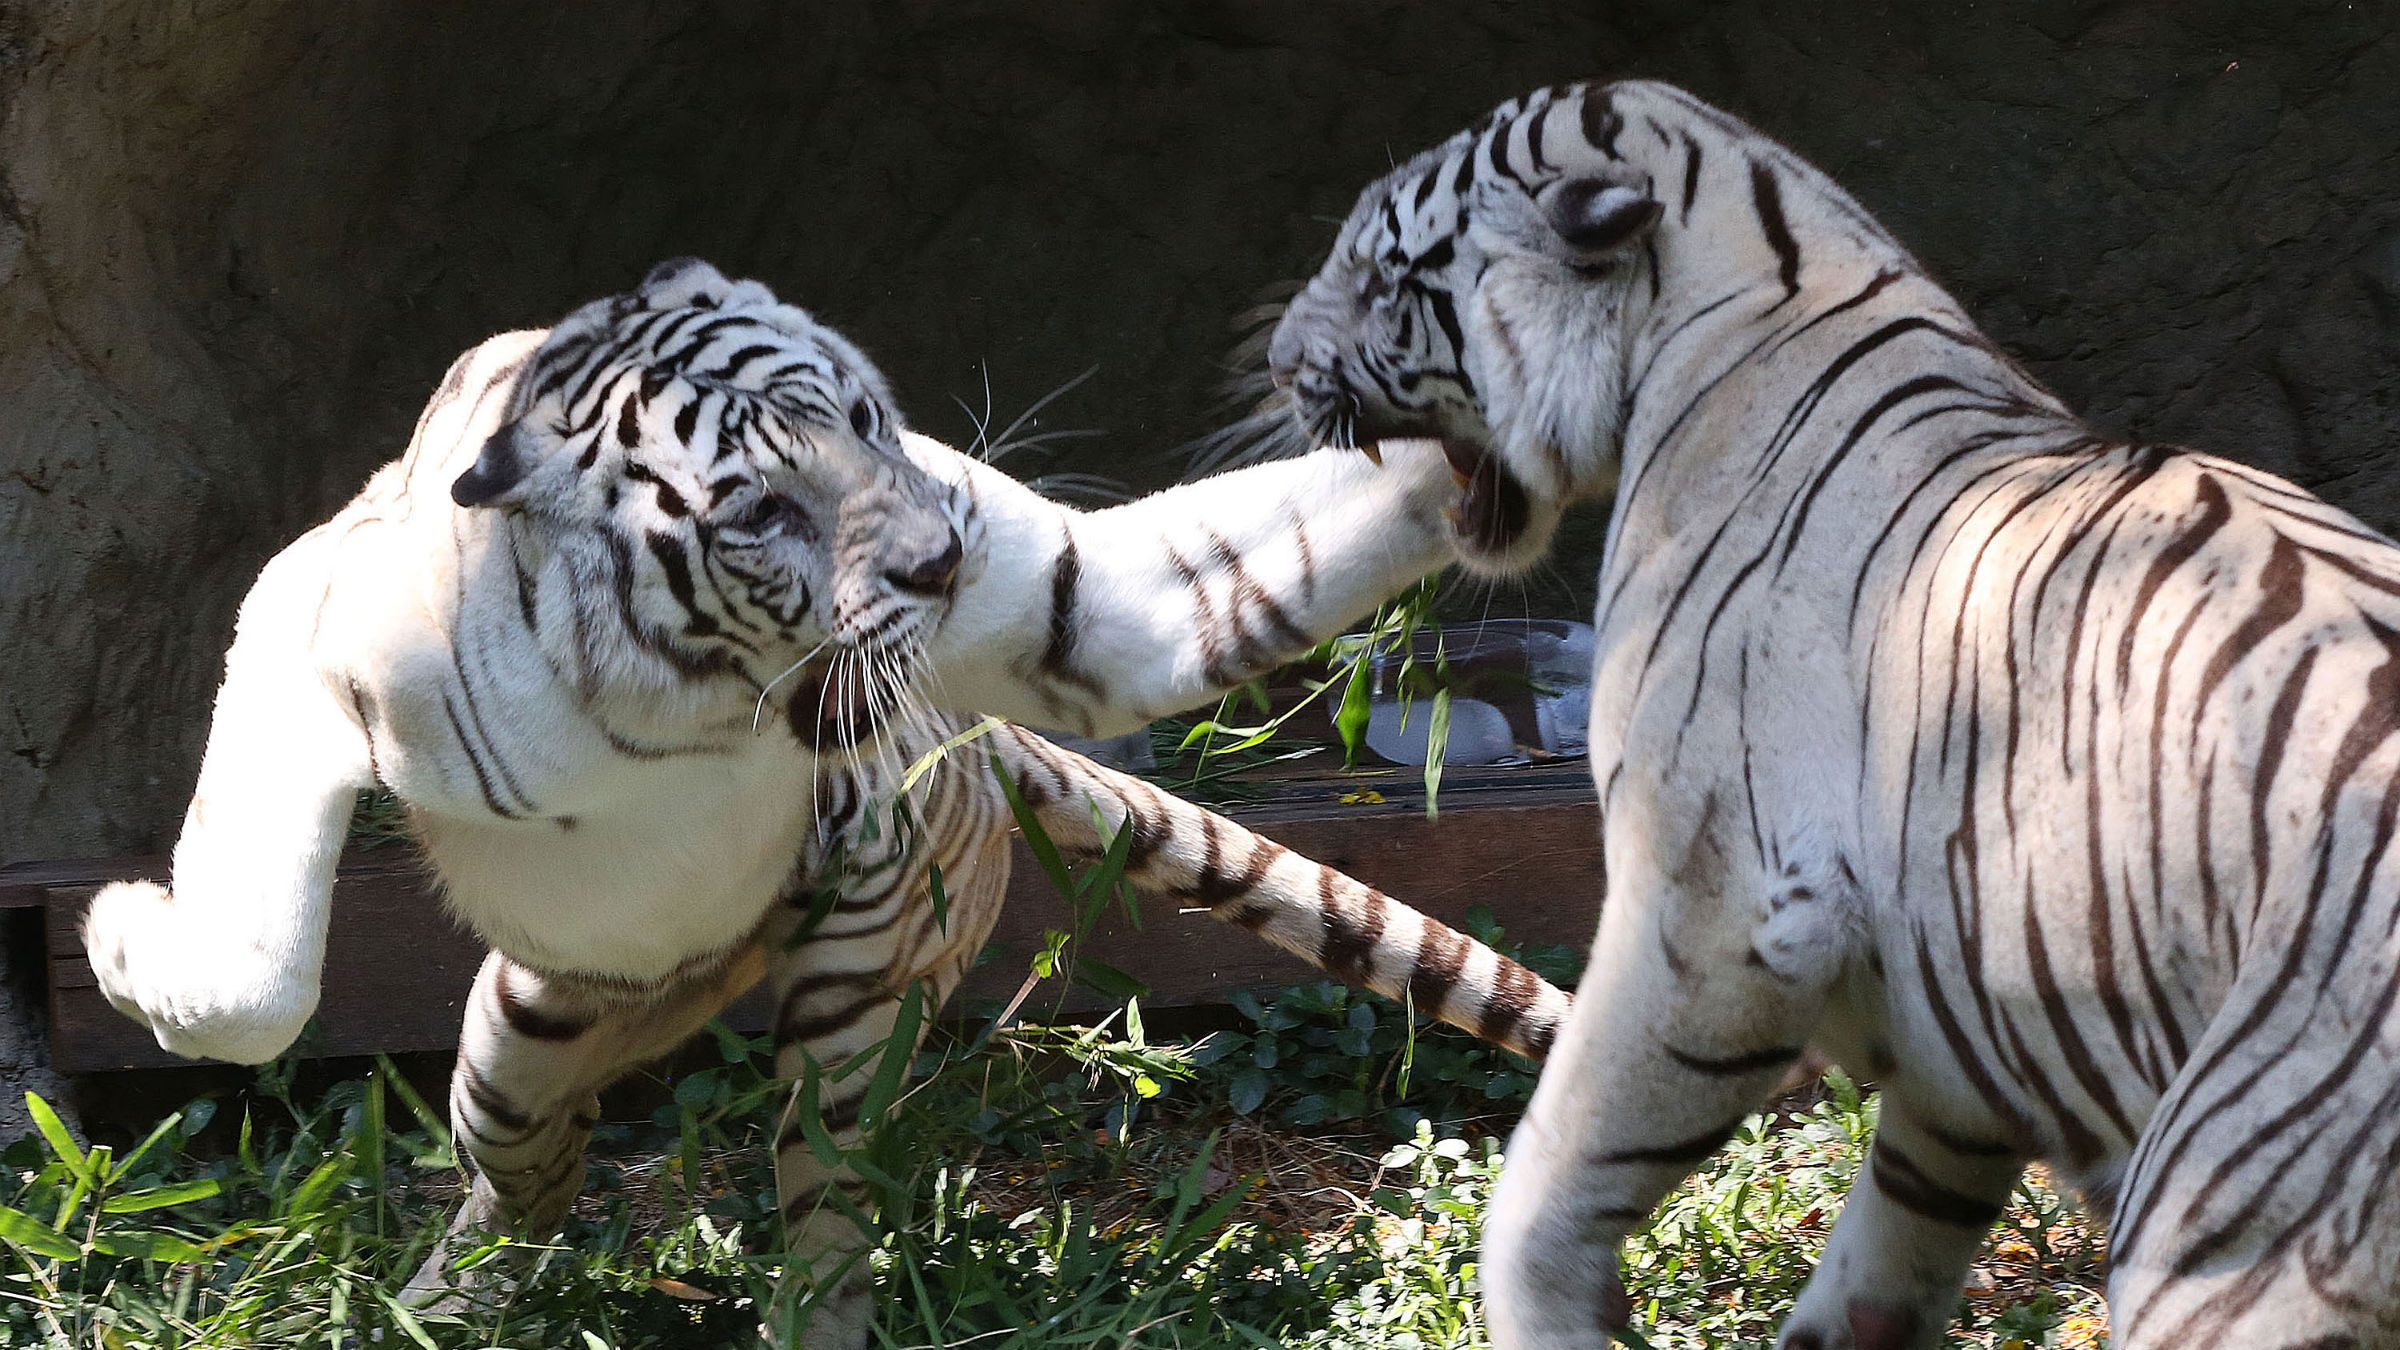 Tiger cubs fight